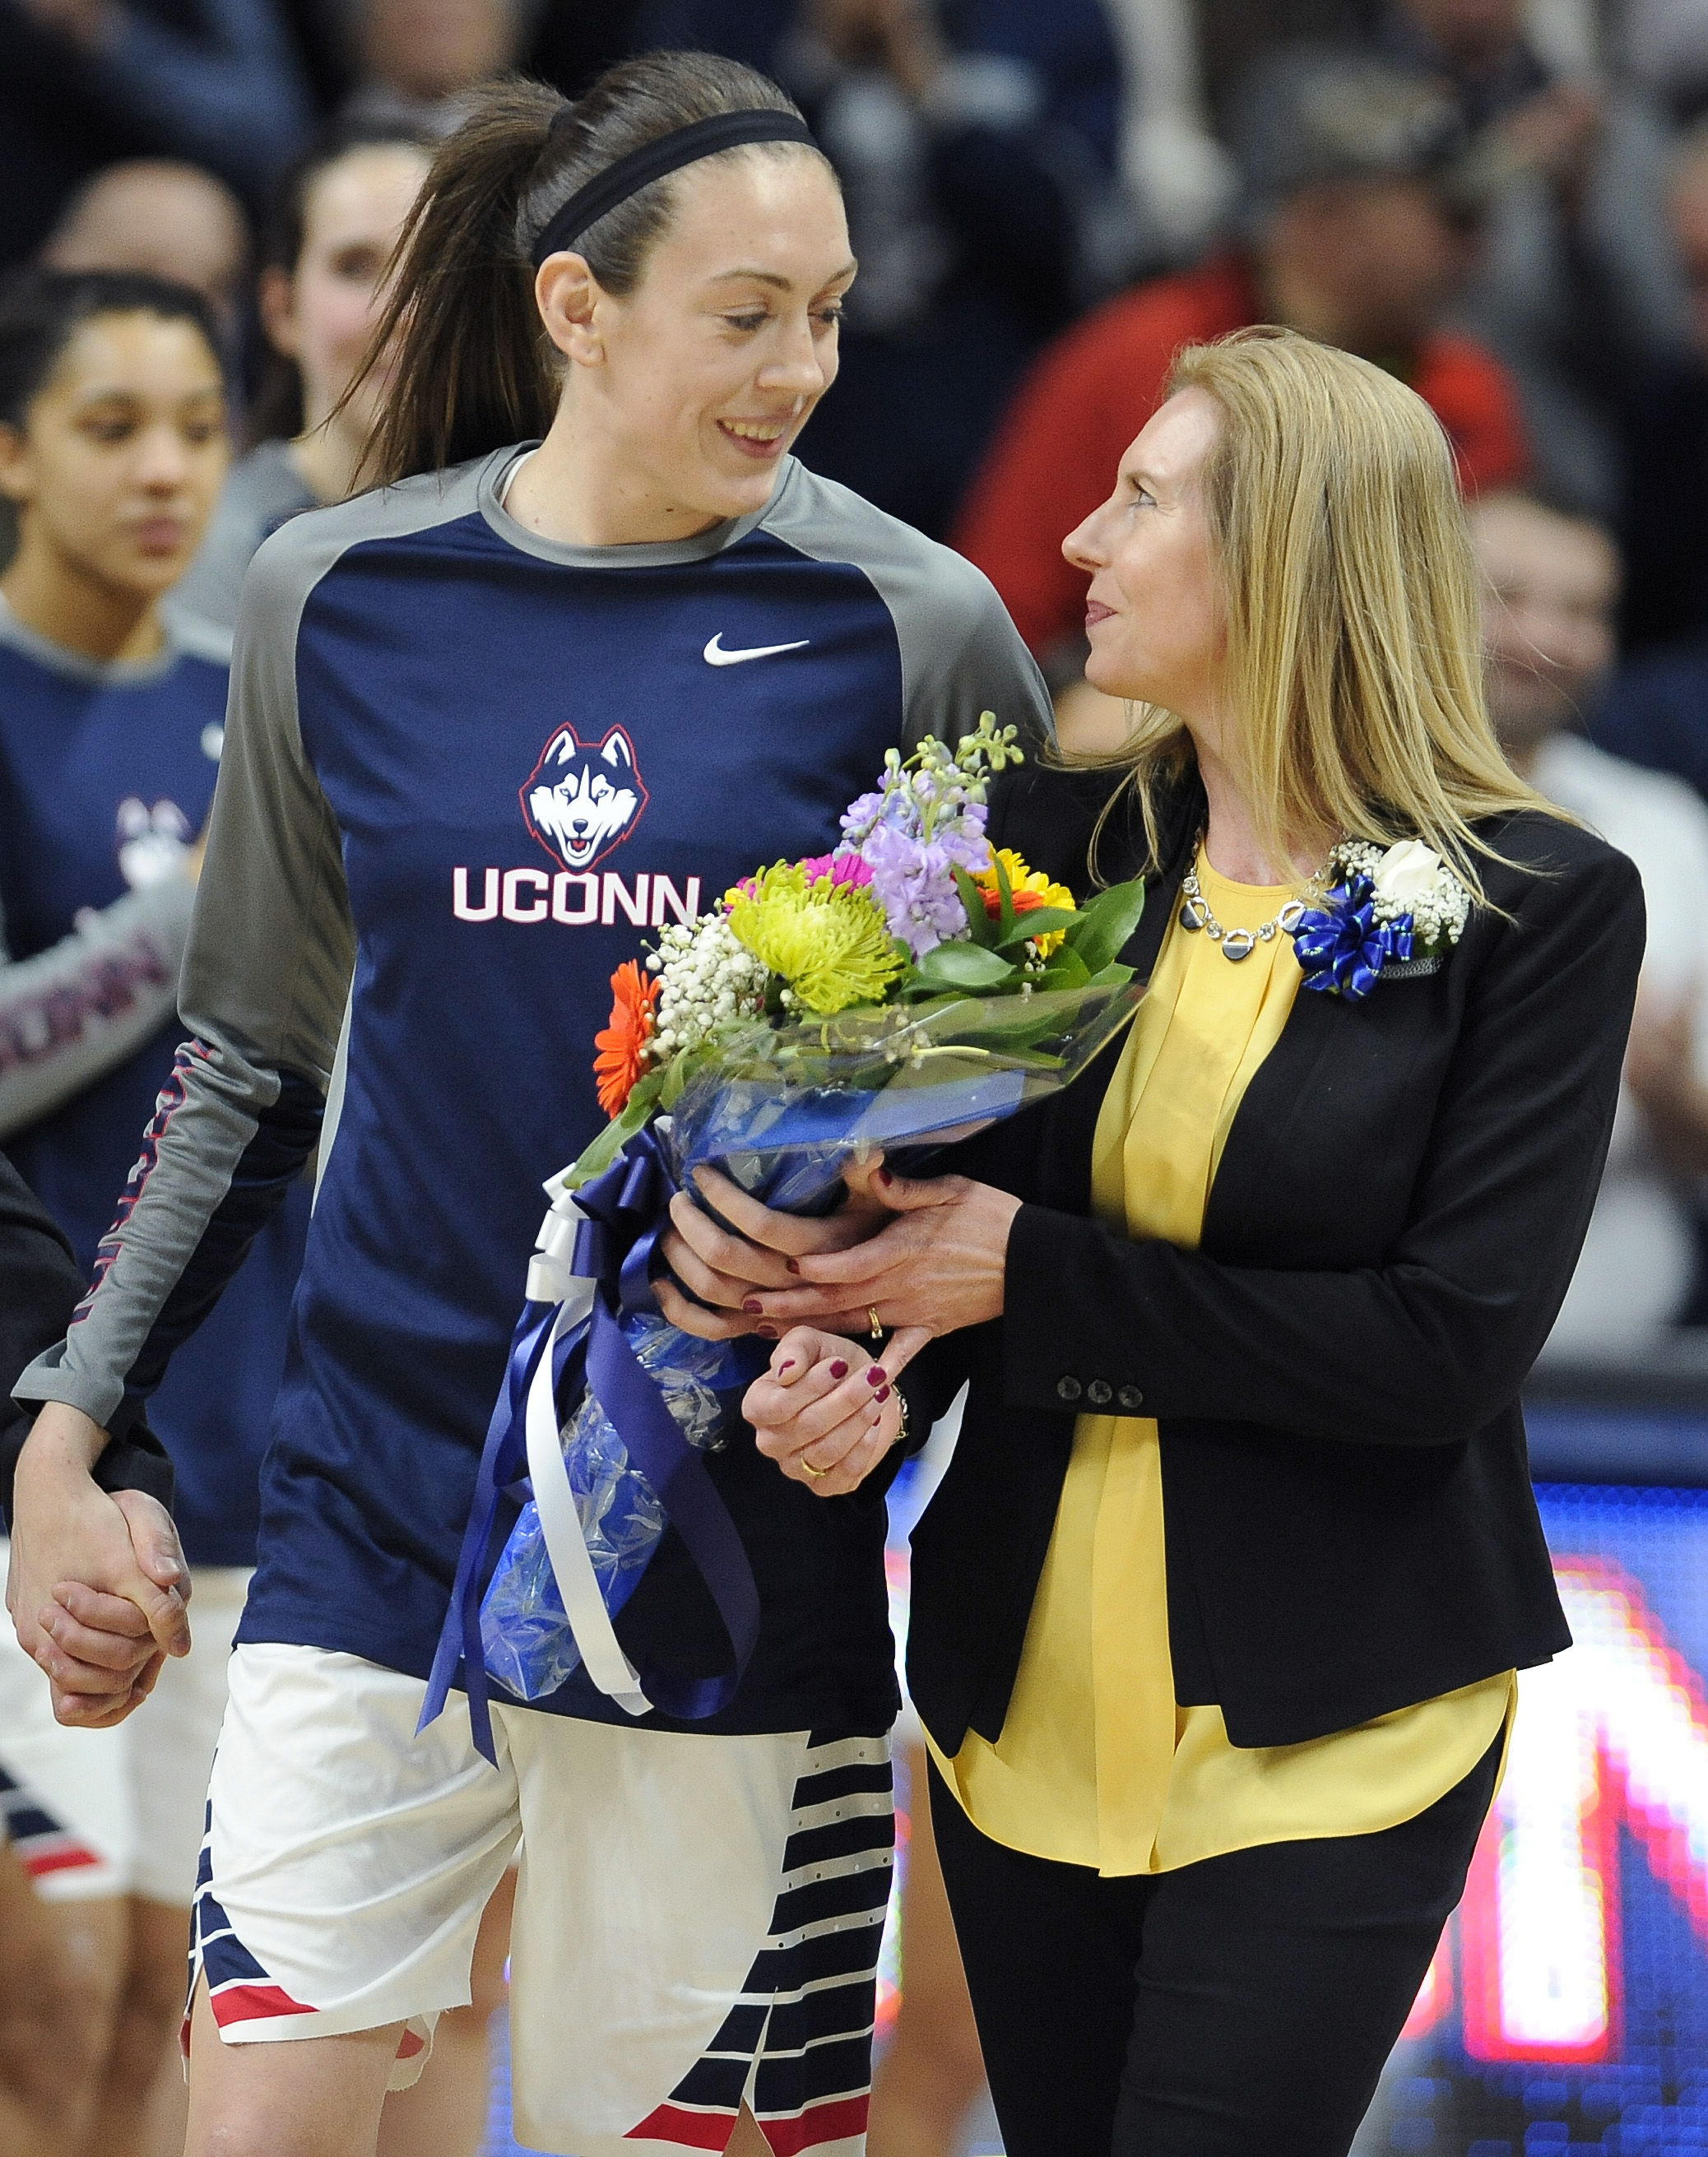 Connecticut's Breanna Stewart looks to her mother Heather Stewart as she is introduced during senior day ceremonies prior to an NCAA college basketball game against Tulane, Saturday, Feb. 27, 2016, in Storrs, Conn. (AP Photo/Jessica Hill)